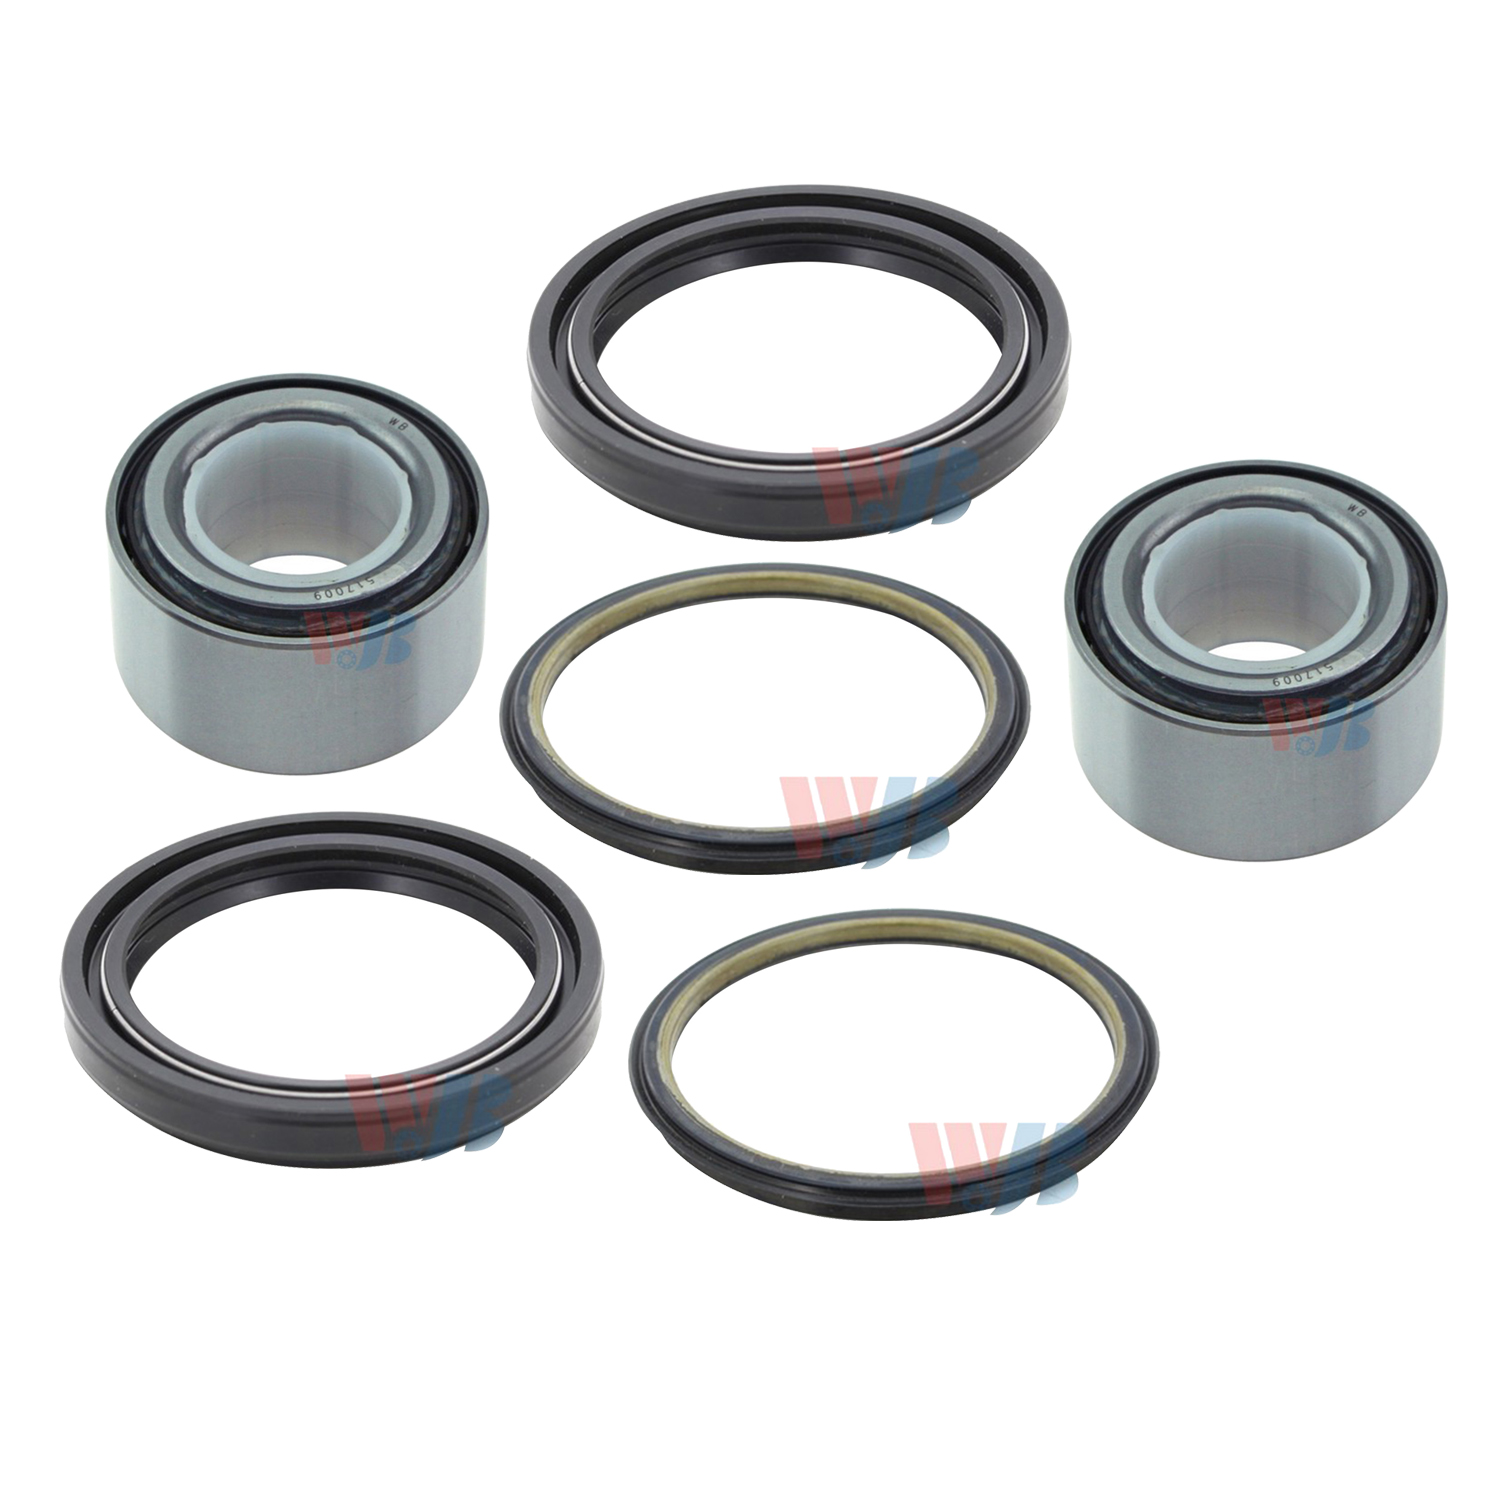 PAIR Front Left And Right Wheel Bearing /& Seal fit 1989 1990 1991 1992 1993 1994 1995 1996 1997 GEO TRACKER